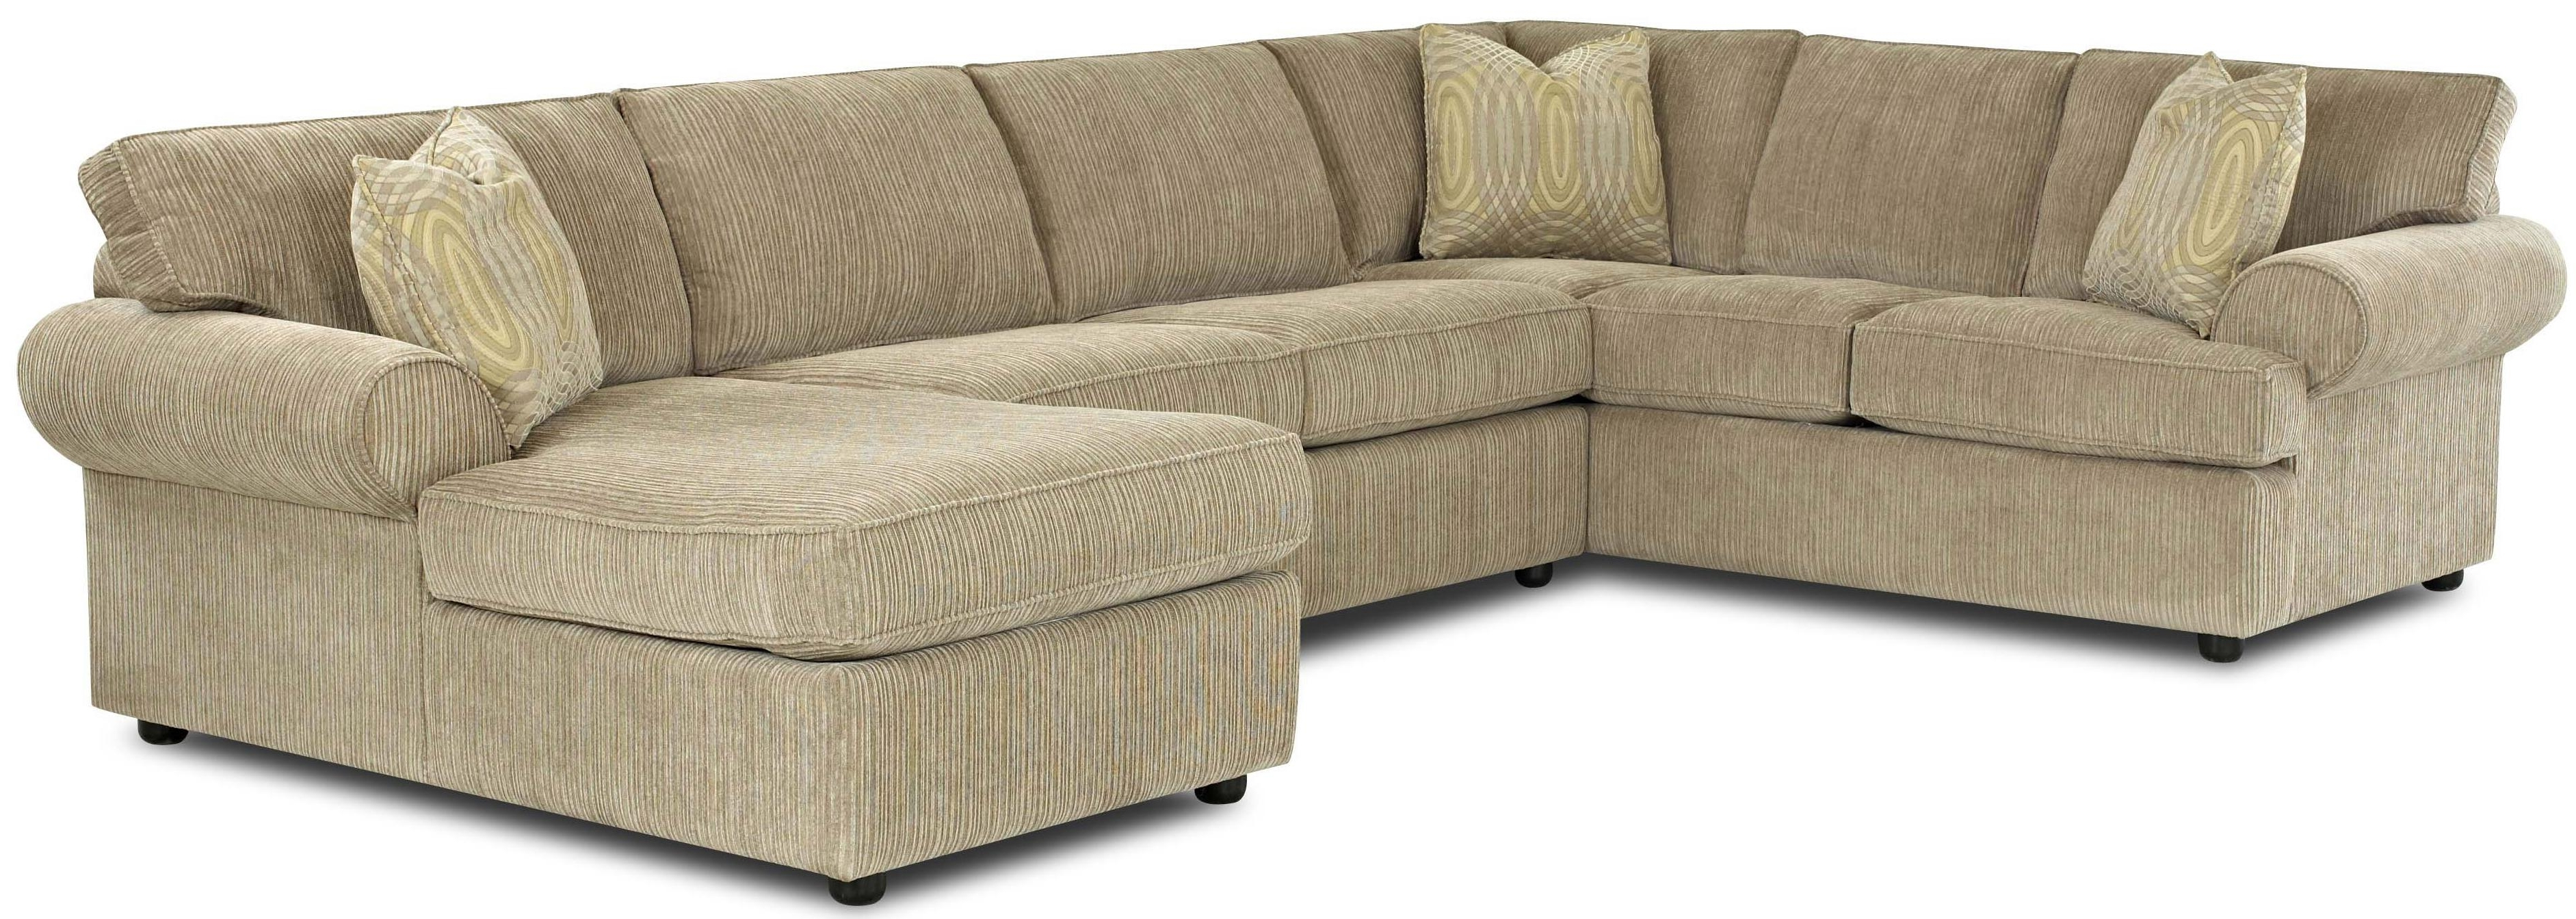 Sleeper Sectionals With Chaise For Well Known Transitional Sectional Sofa With Rolled Arms And Right Chaise And (View 7 of 15)